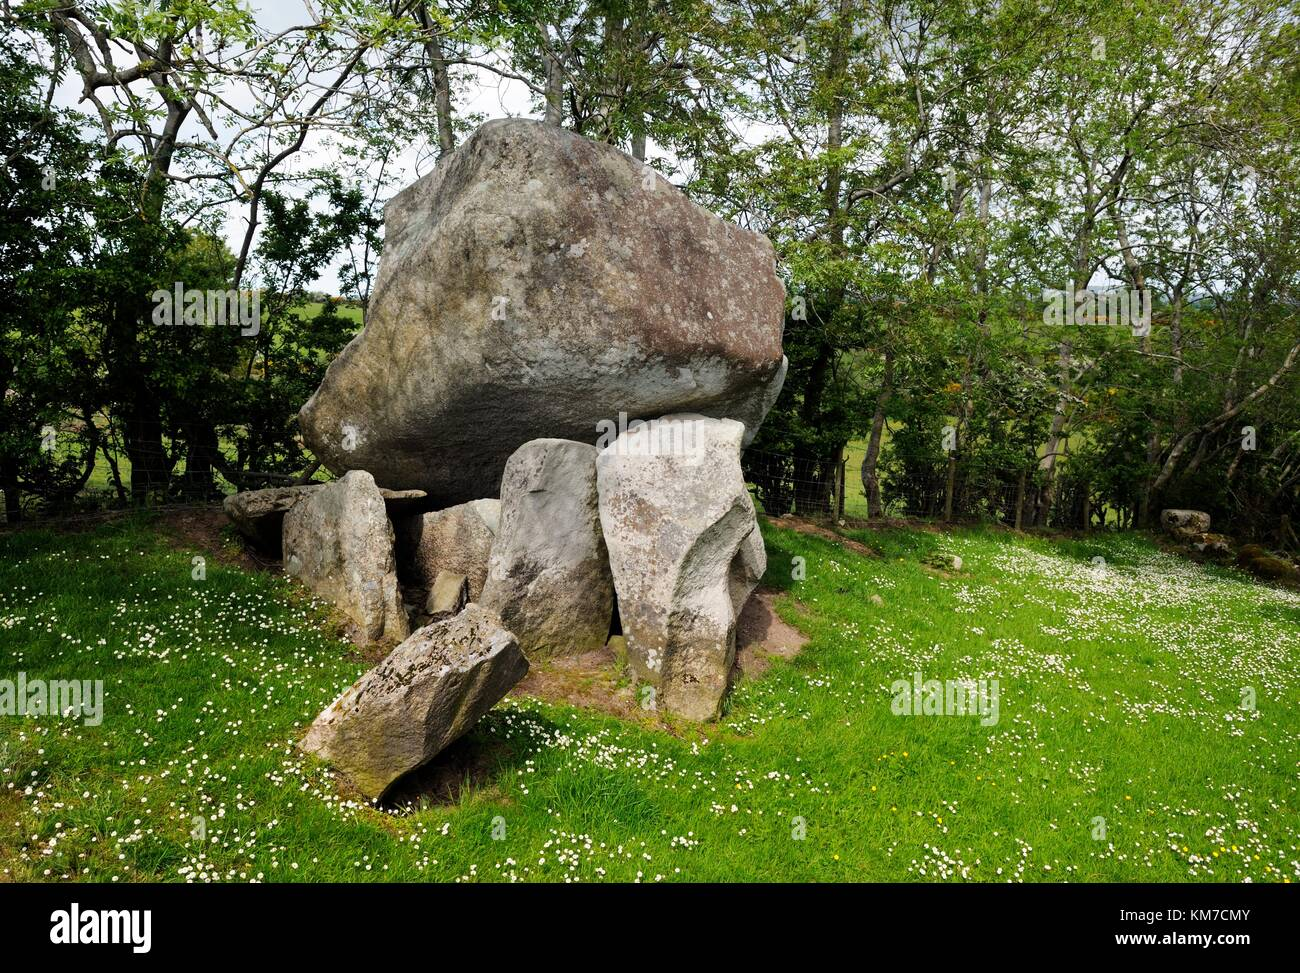 Goward Dolmen, also called Cloghmore Cromlech. Hilltown, County Down, Northern Ireland. Prehistoric megalithic burial - Stock Image